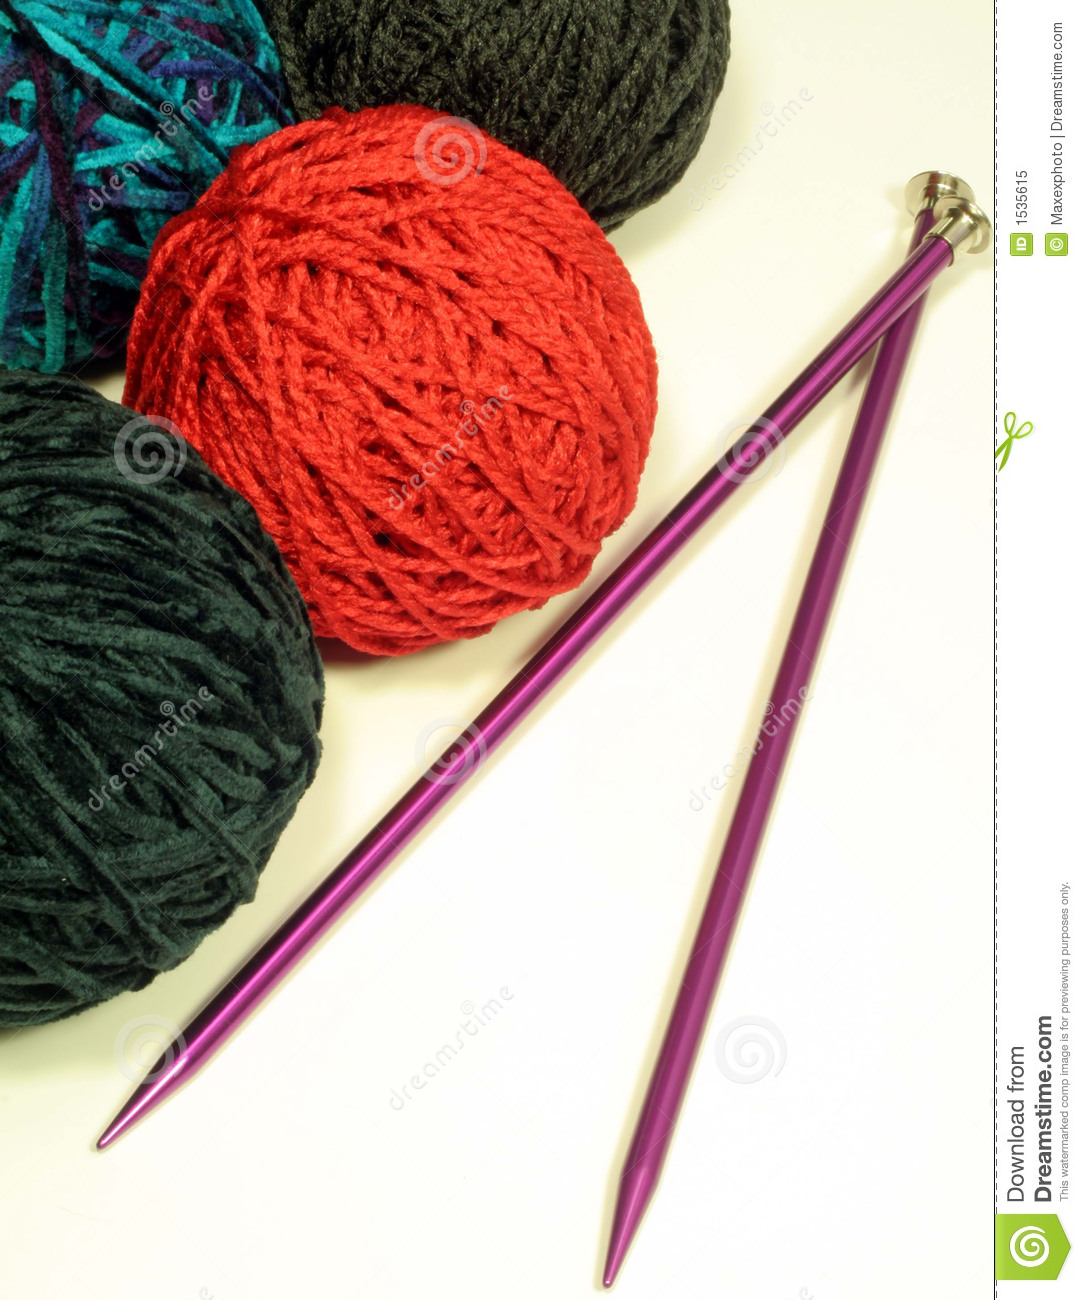 Yarn Ball Needles | www.imgkid.com - The Image Kid Has It!